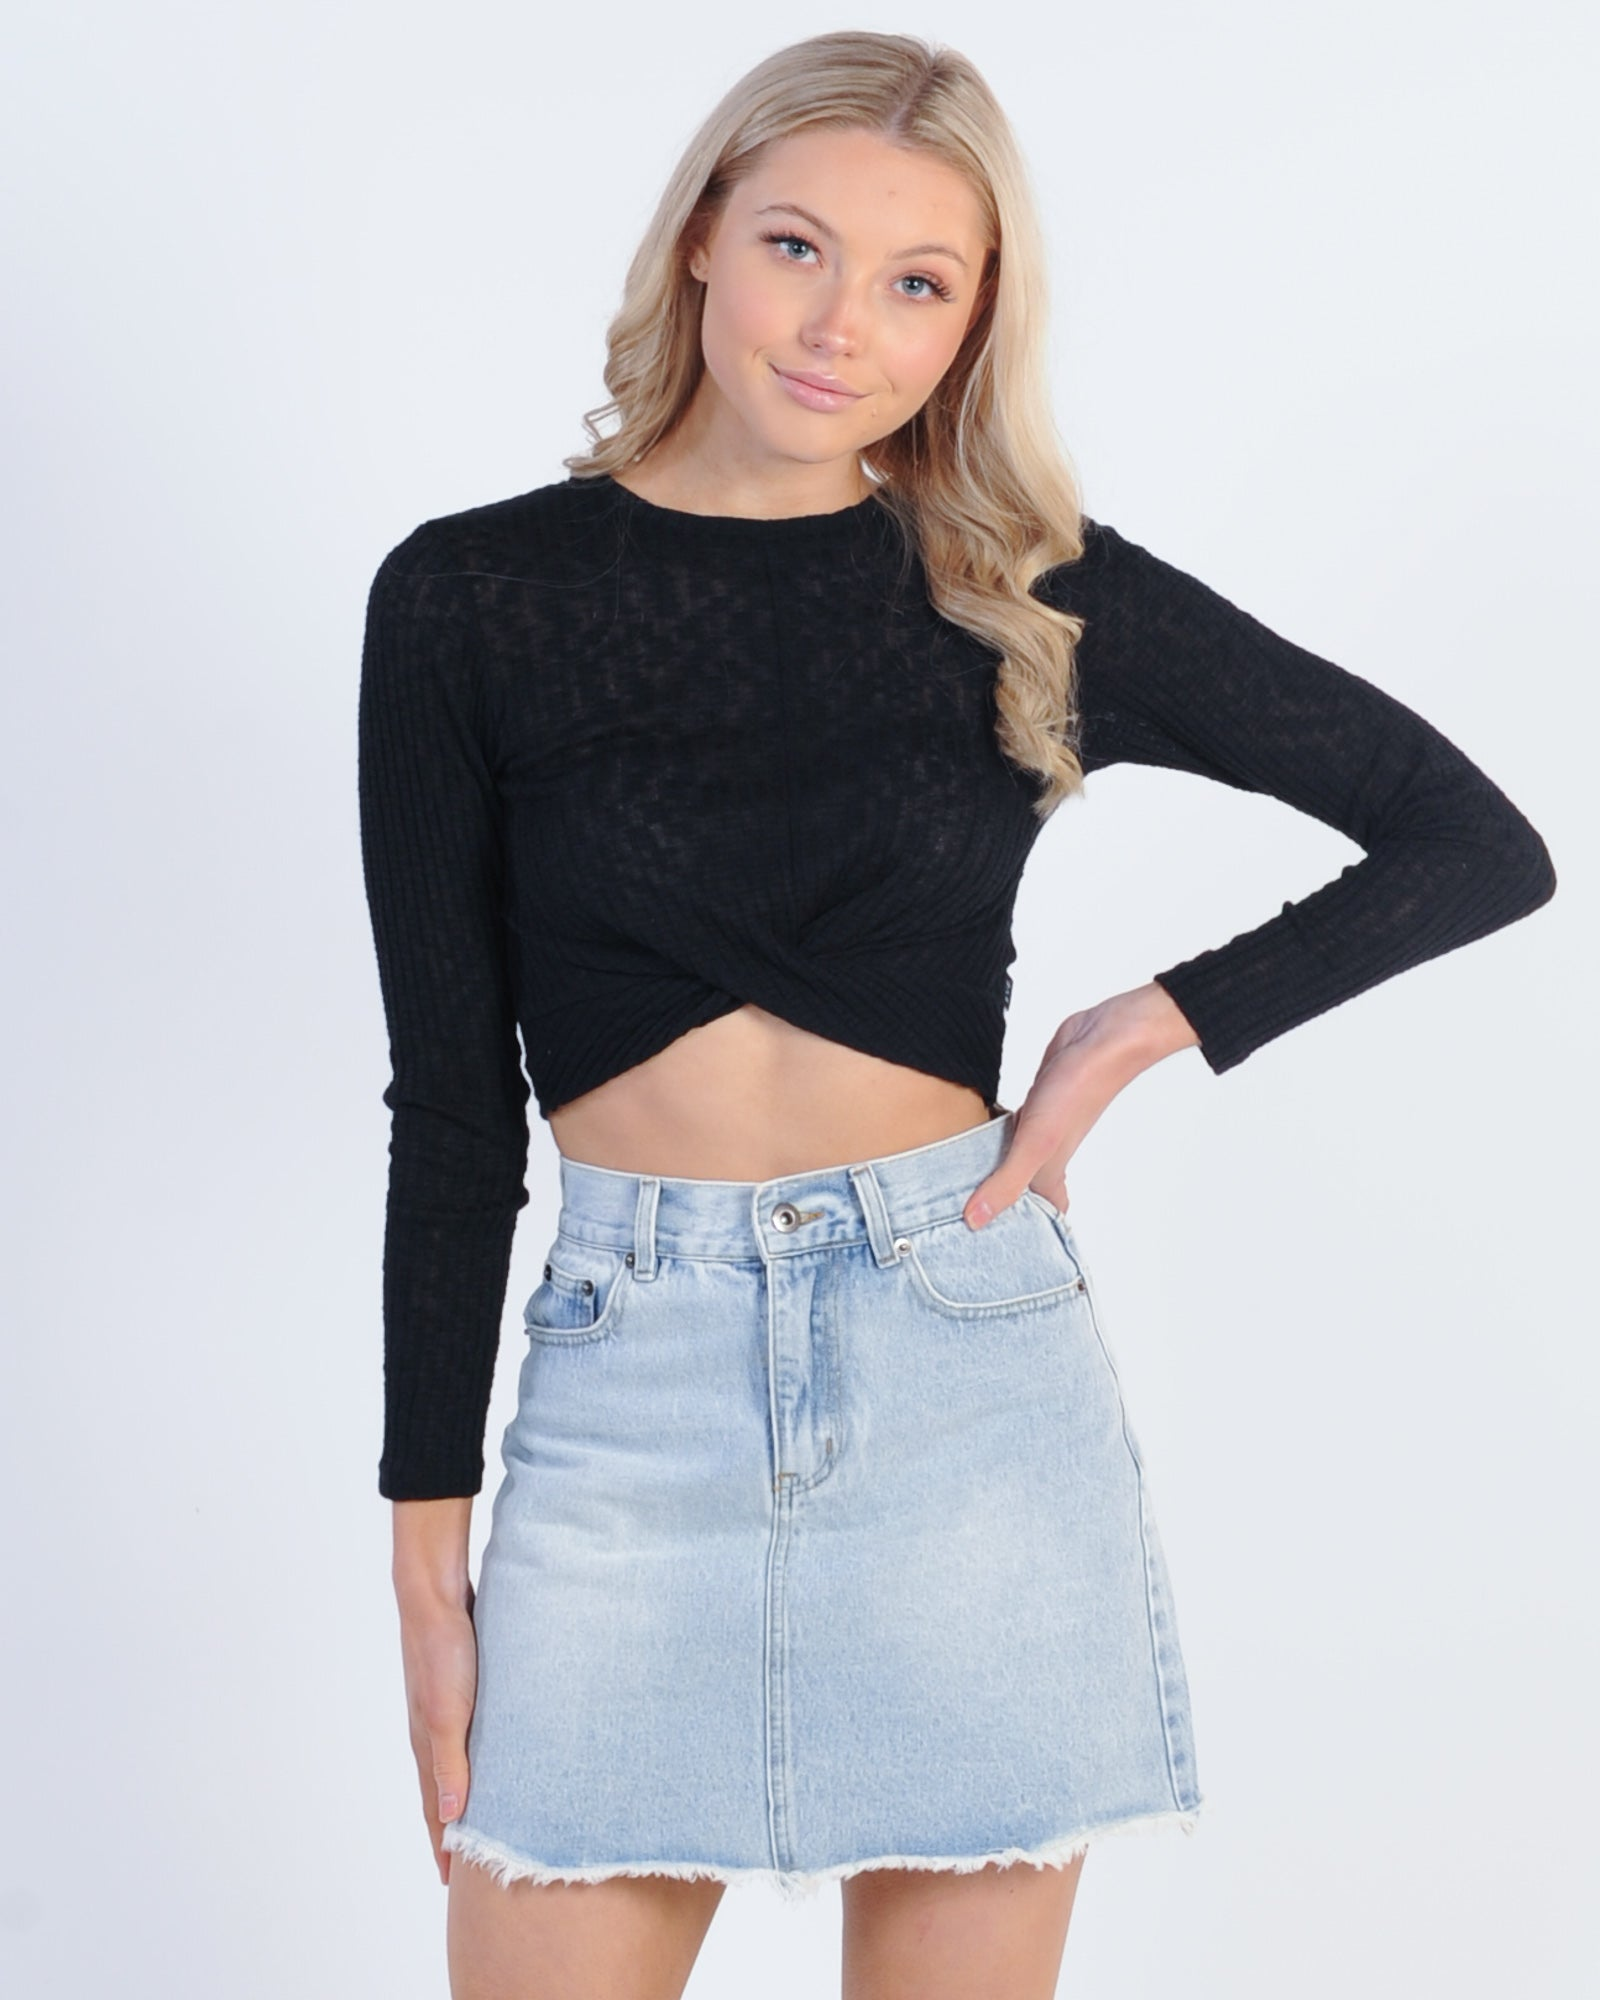 All About Eve Twist Textured L/S Top - Black